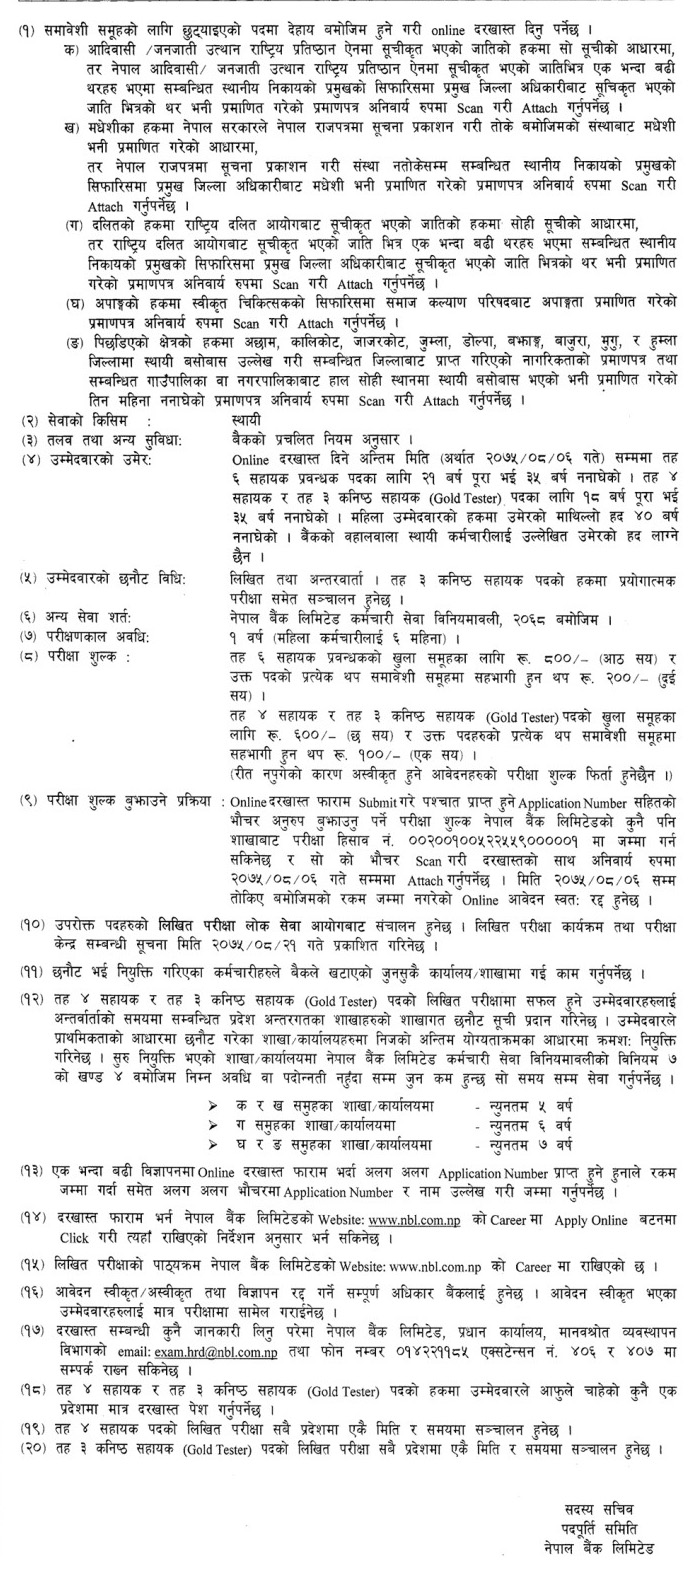 nepal4-1 Vacancy Application Letter For Bank on personal reference letter for bank, letter format for bank, follow up letter for bank, resume for bank, application cover letter examples, motivation letter for bank, recommendation letter for bank, formal letter for bank, sample cover letter for bank, demand letter for bank, business proposal for bank, cover letter examples for bank,